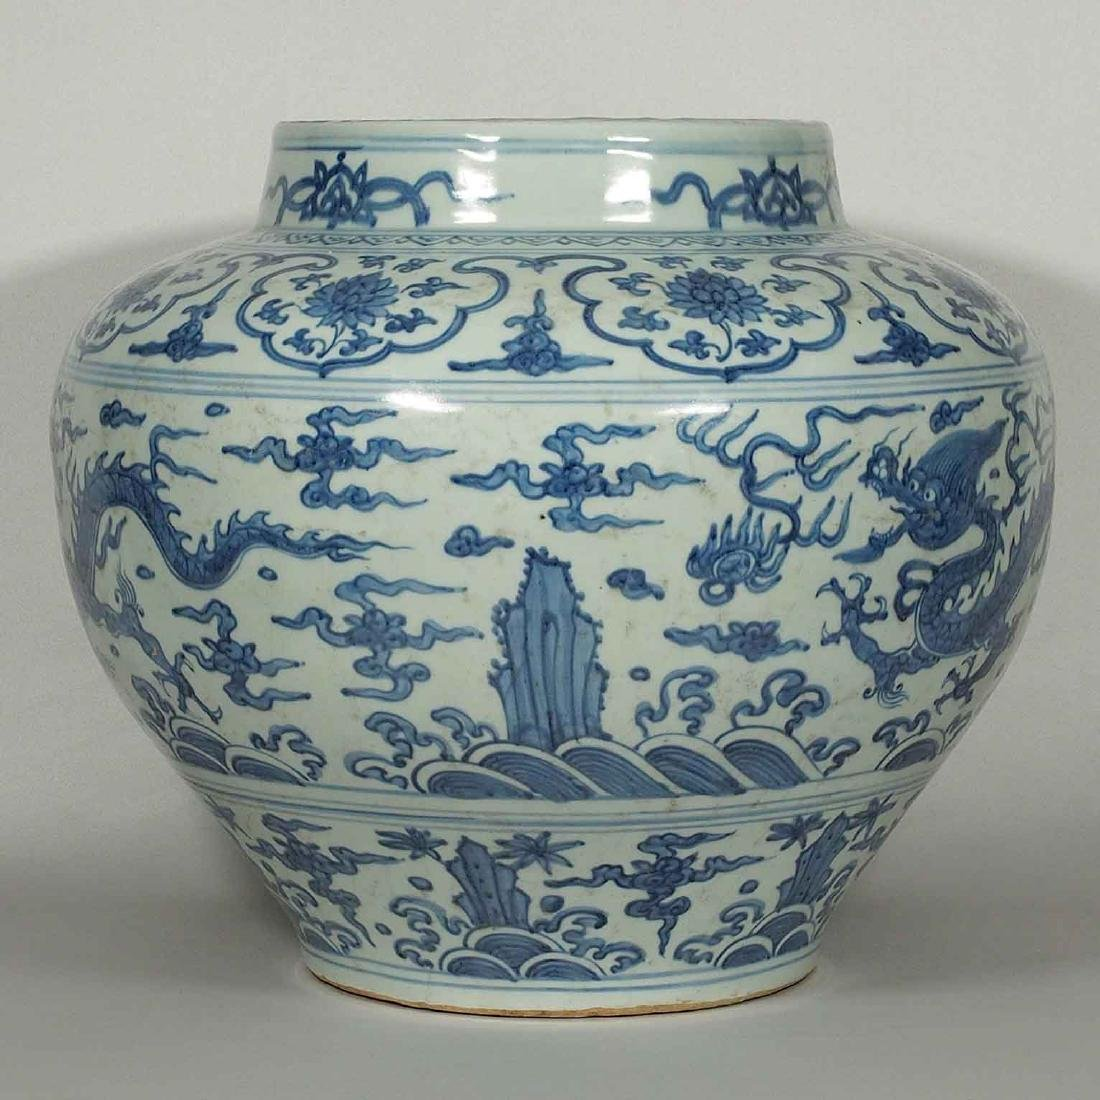 Massive Jar with Two Dragons Design, 15th Century Ming - 2